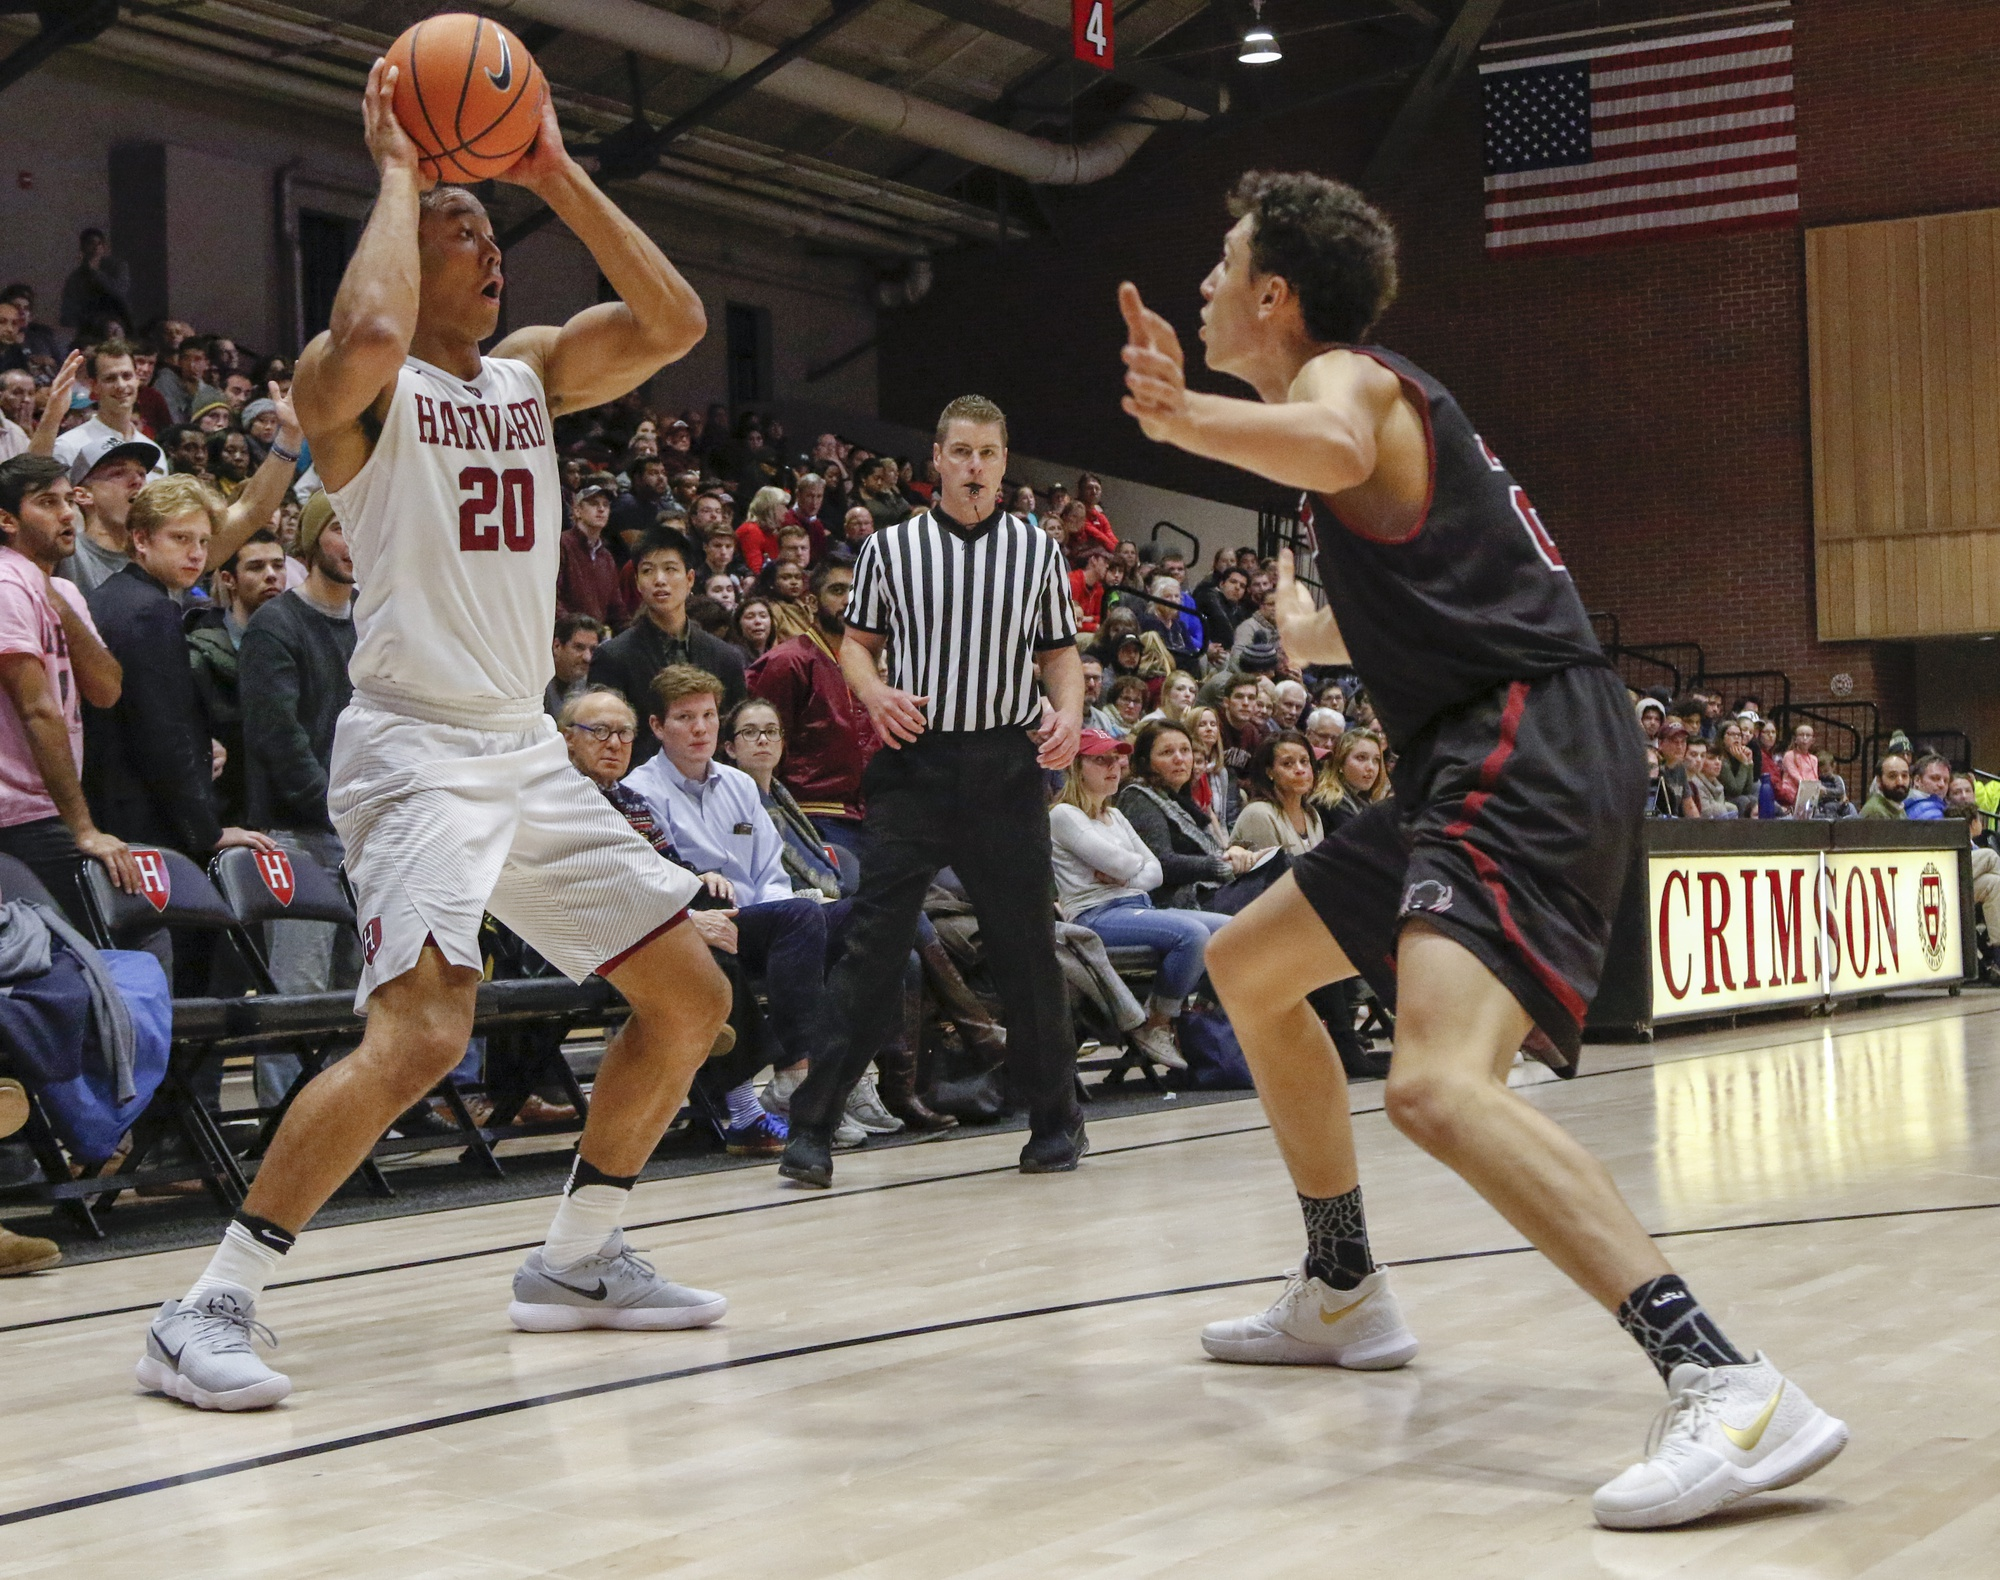 Sophomore wing Justin Bassey led the Crimson into a Thursday night matchup with Holy Cross. Despite his efforts, Harvard dropped an anomalous game to the Crusaders, primarily due to a slew of turnovers.